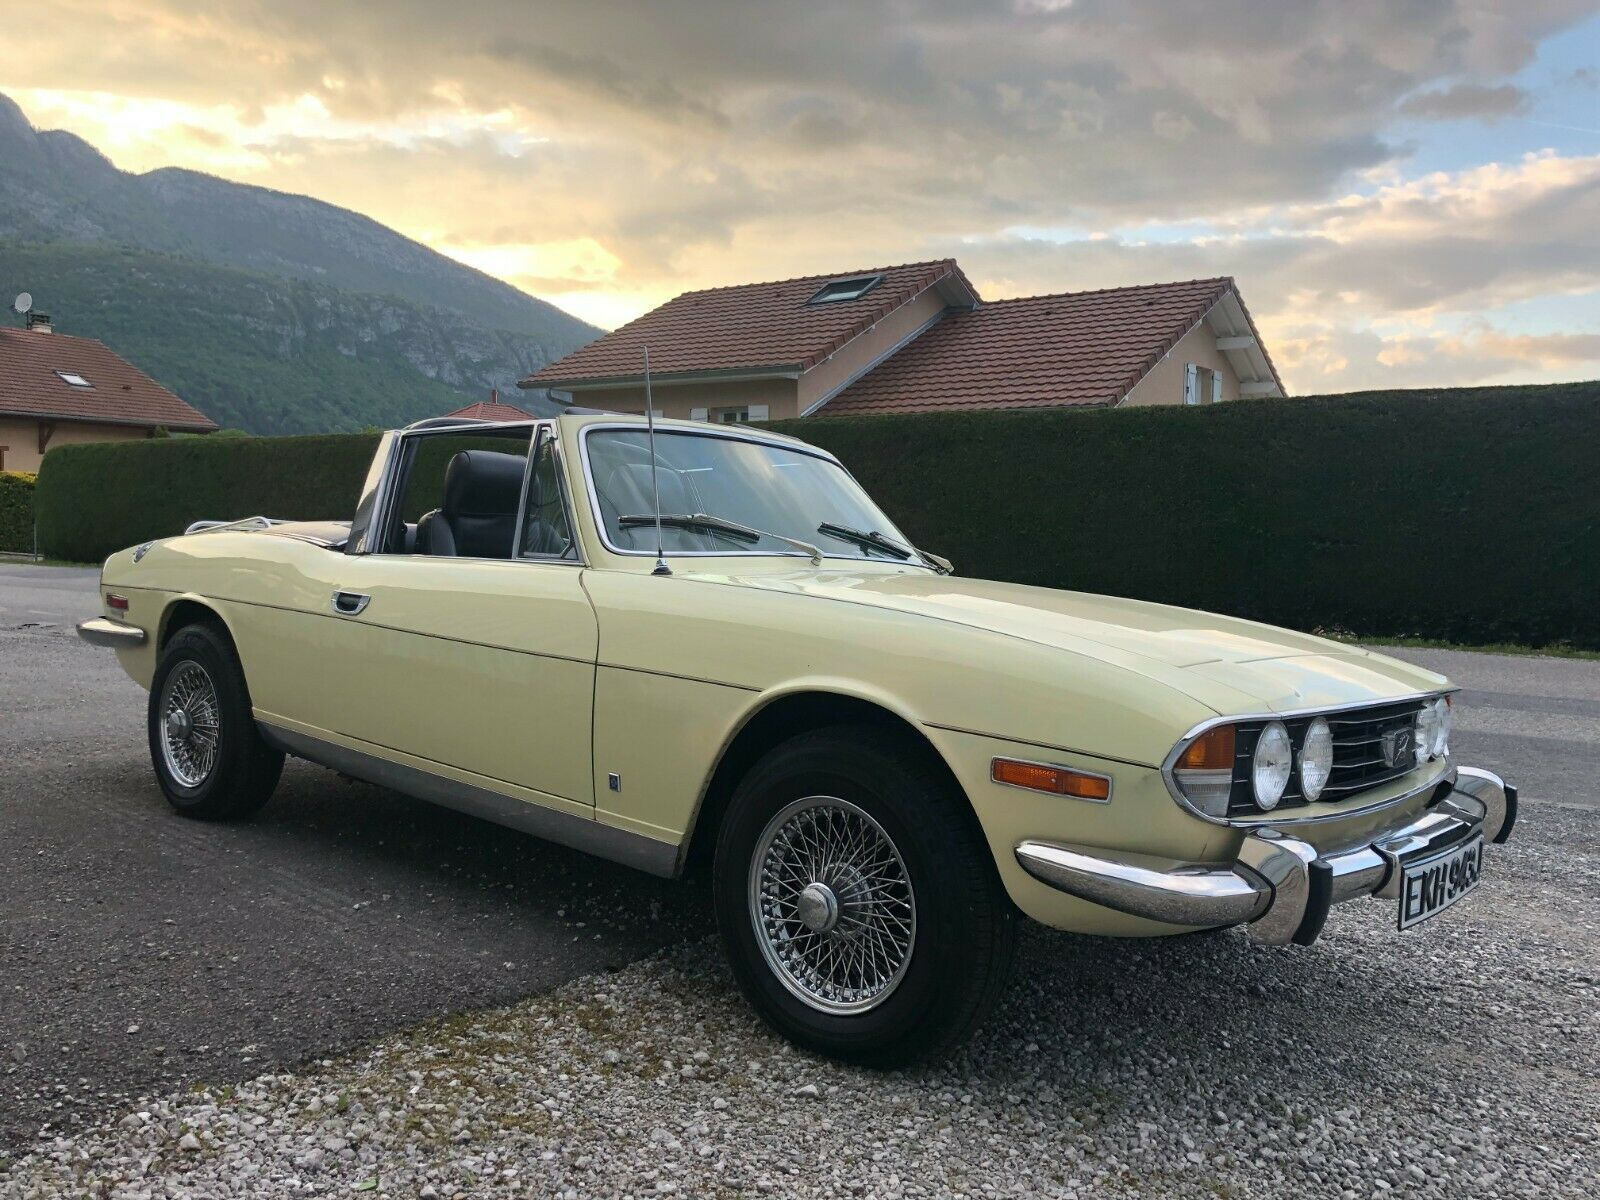 Triumph Stag V8 convertible LHD left hand drive 1971 Federal USA spec